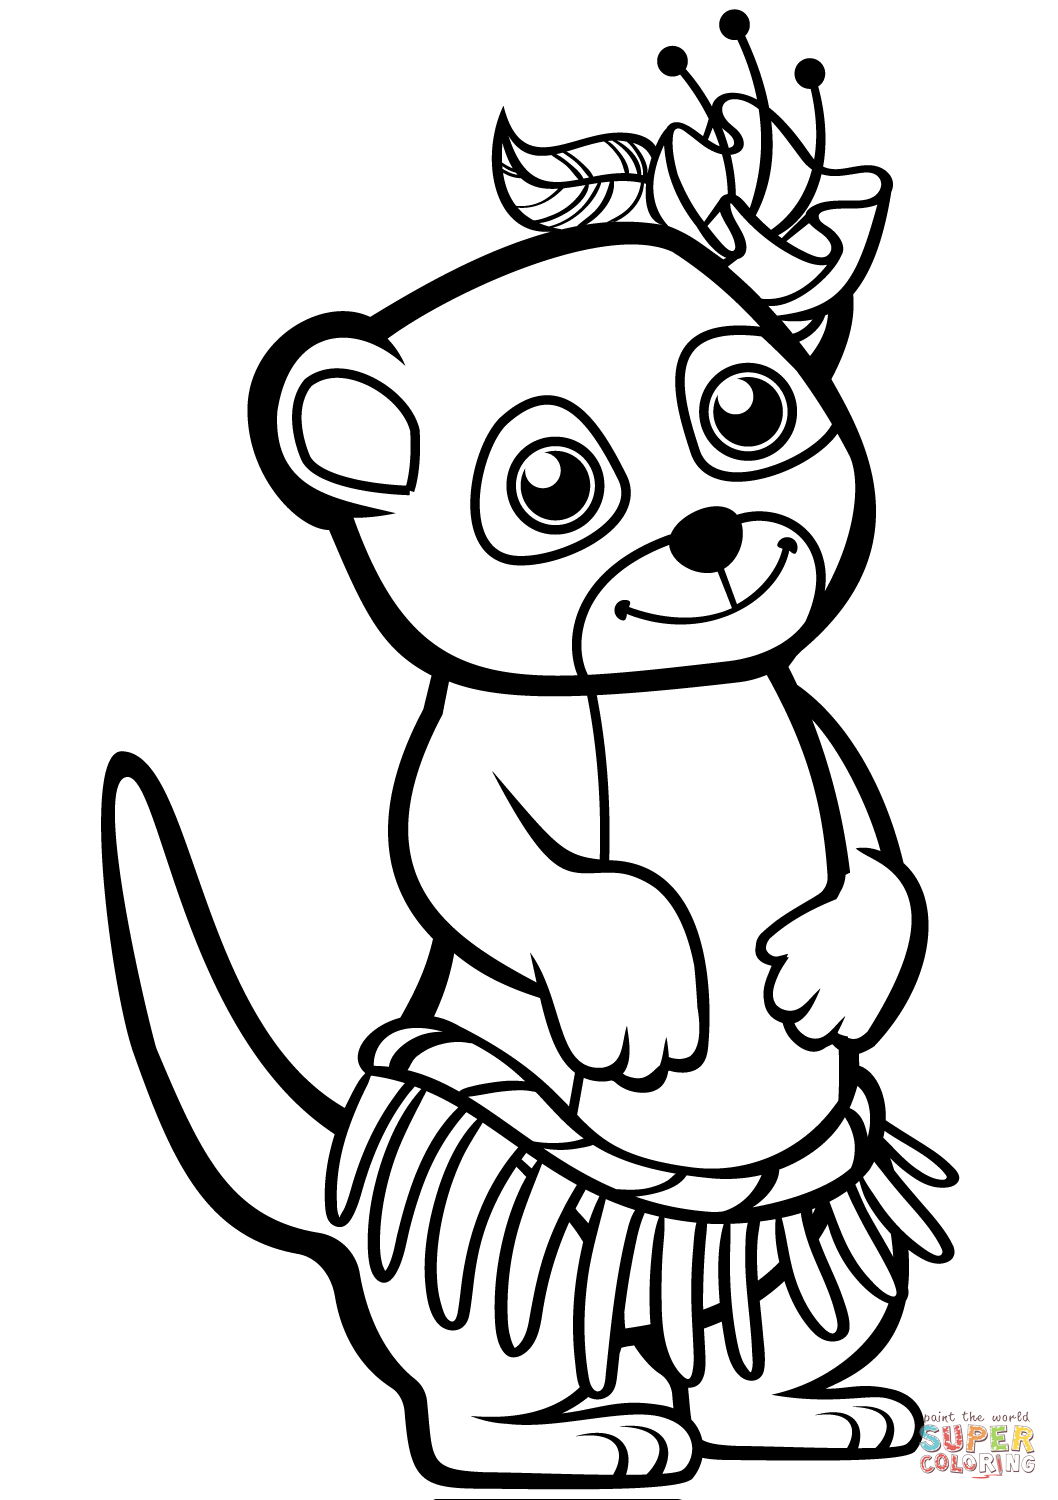 meerkat colouring pages funny meerkat coloring page free printable coloring pages colouring meerkat pages